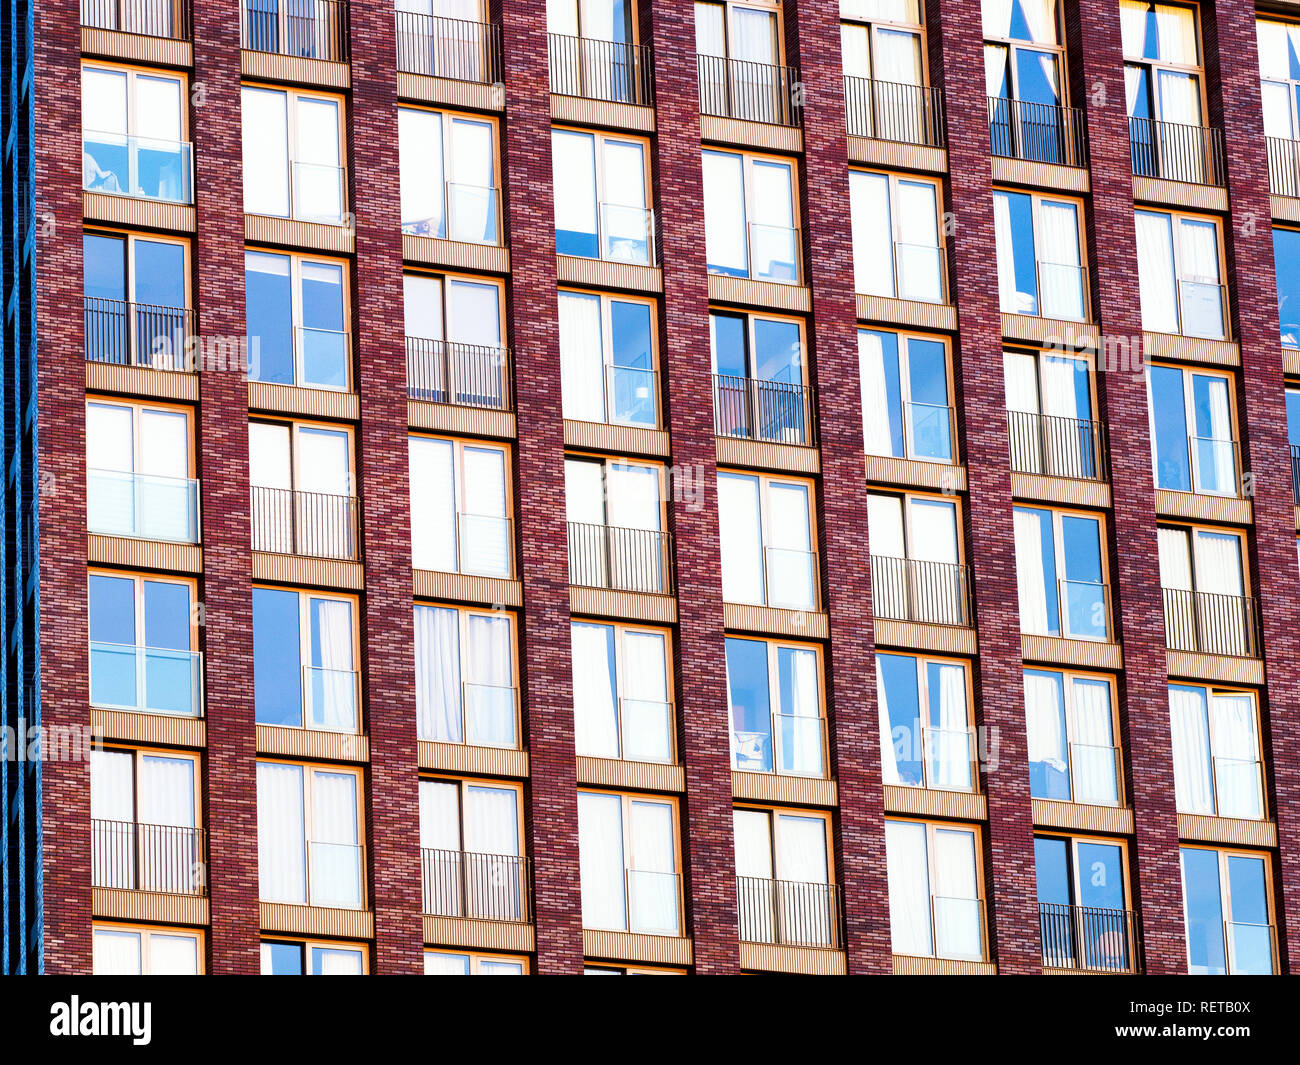 Embassy Gardens building facade,  residential and business development in the Nine Elms regeneration zone in London - Stock Image